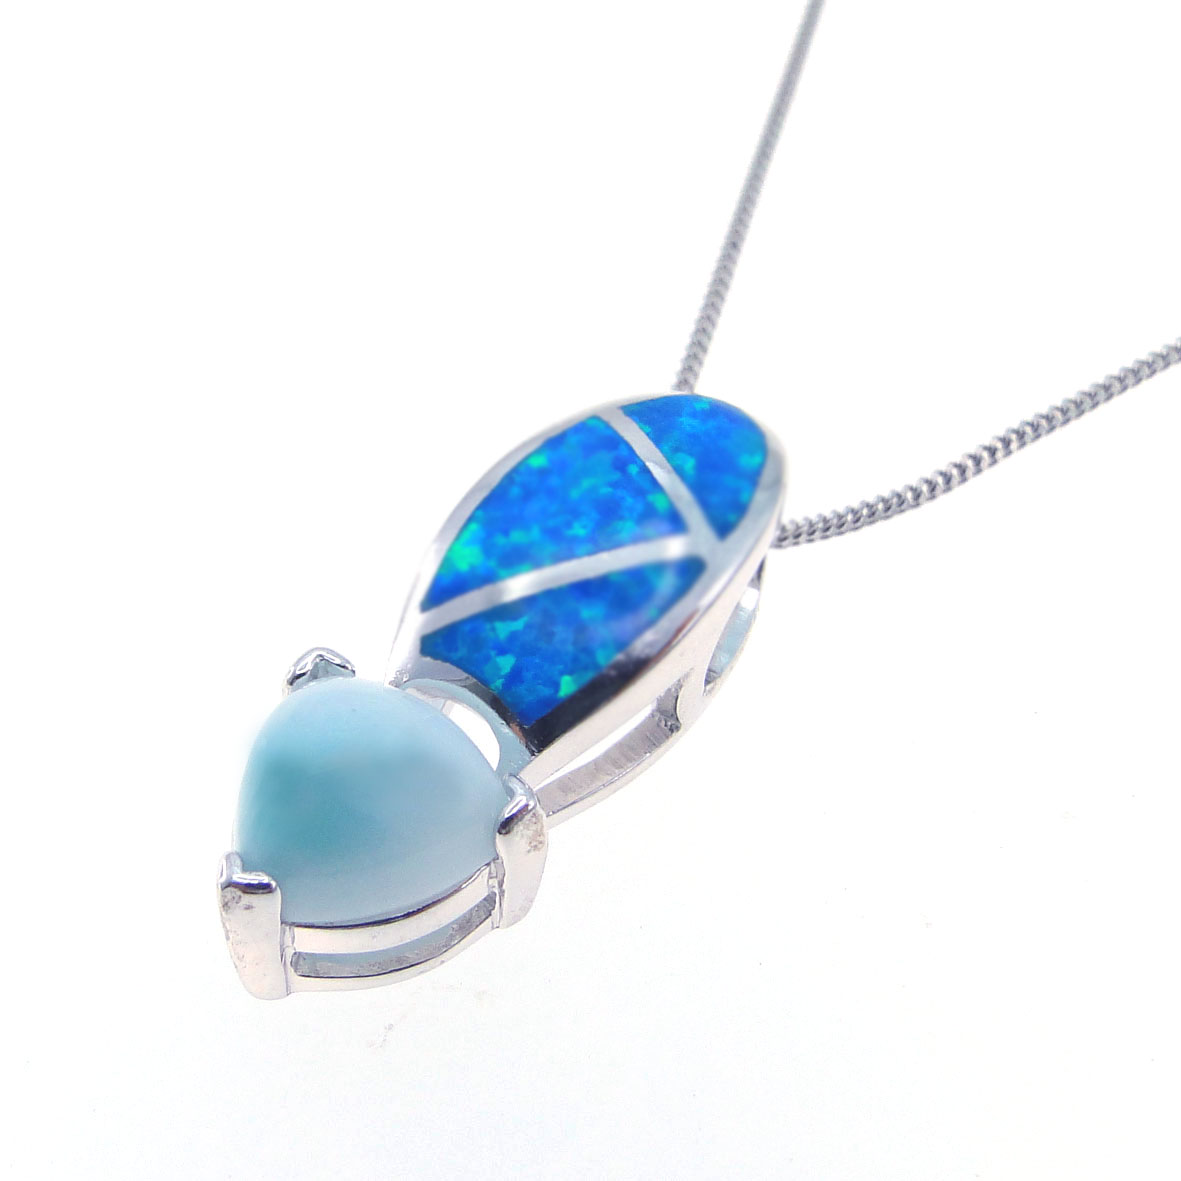 925 sterling silver larimar with blue opal necklace pendants for women